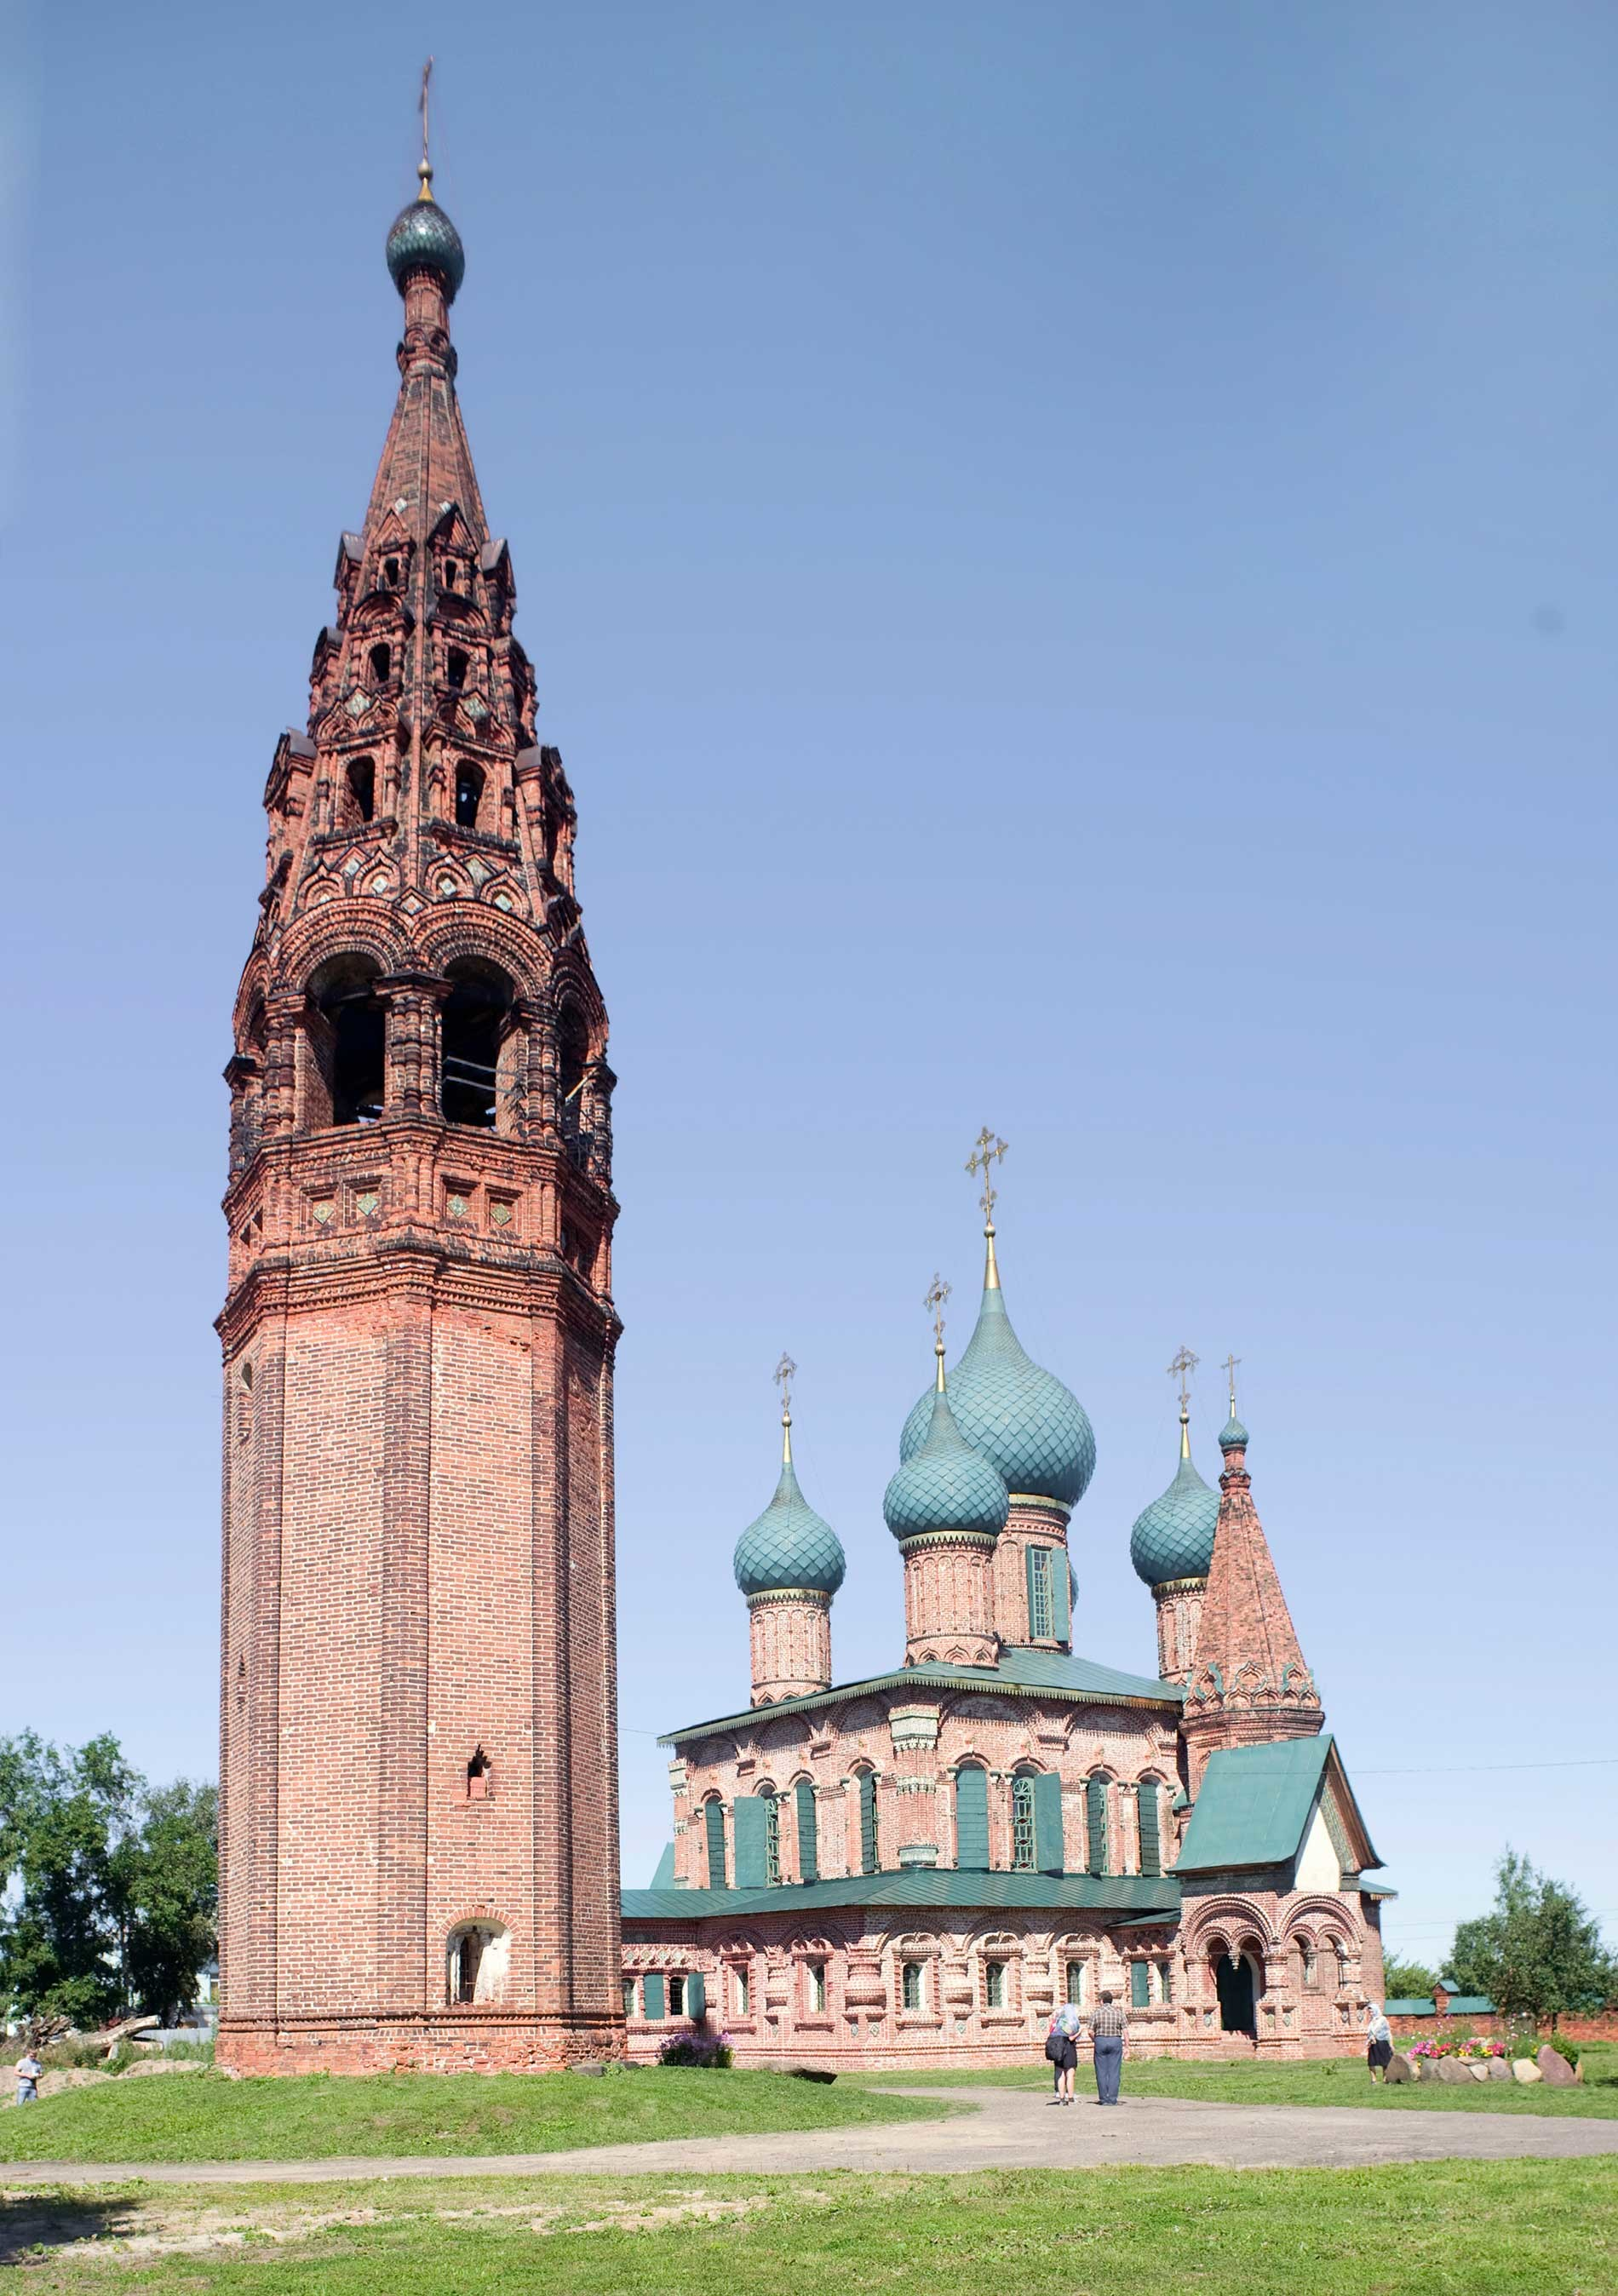 Korovniki ensemble. Bell tower with Church of St. John Chrysostome. Southwest view. August 15, 2017.